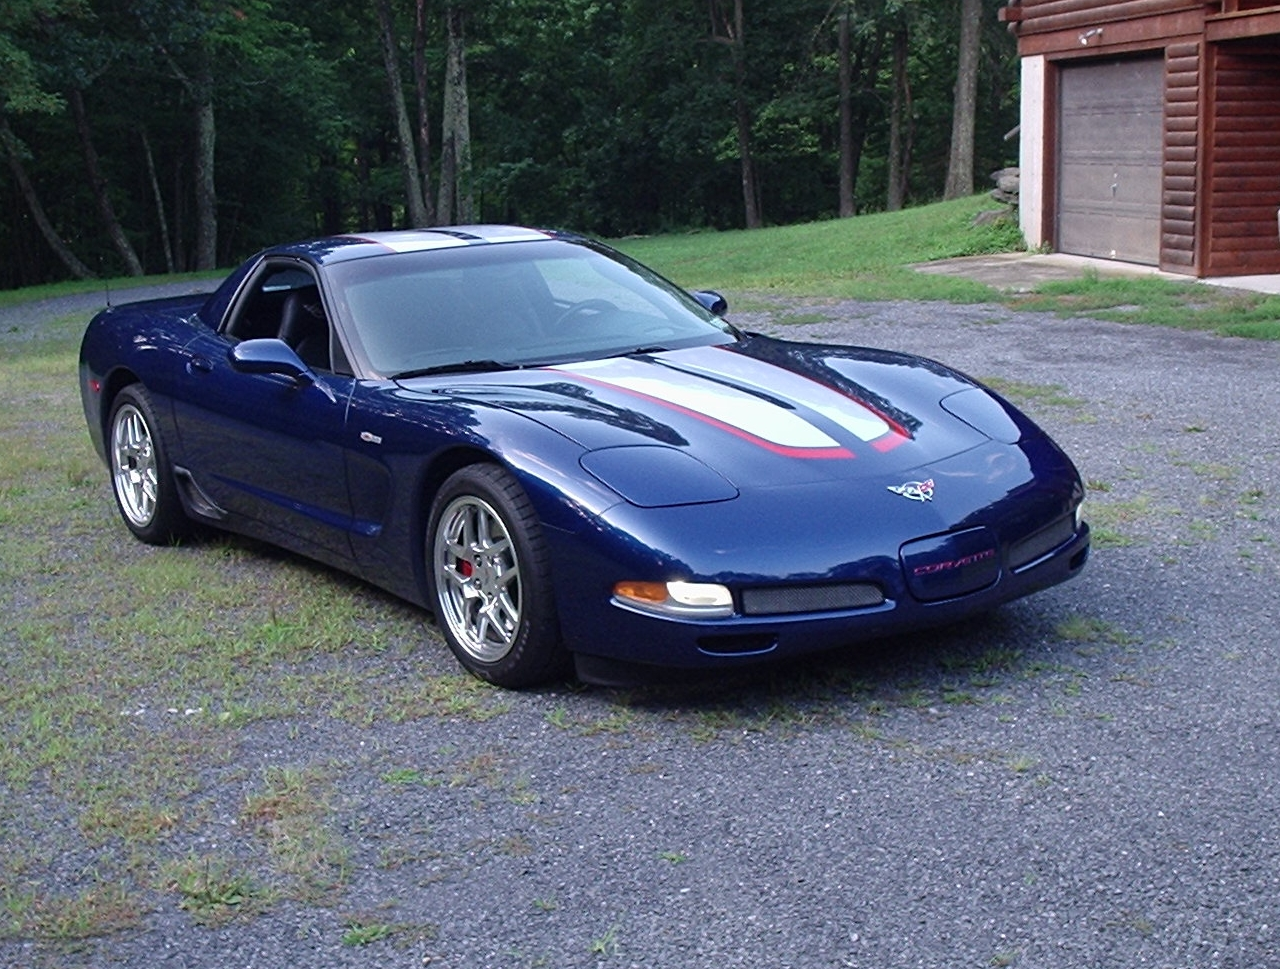 2004 Commemorative Edition Corvette Z06 for sale